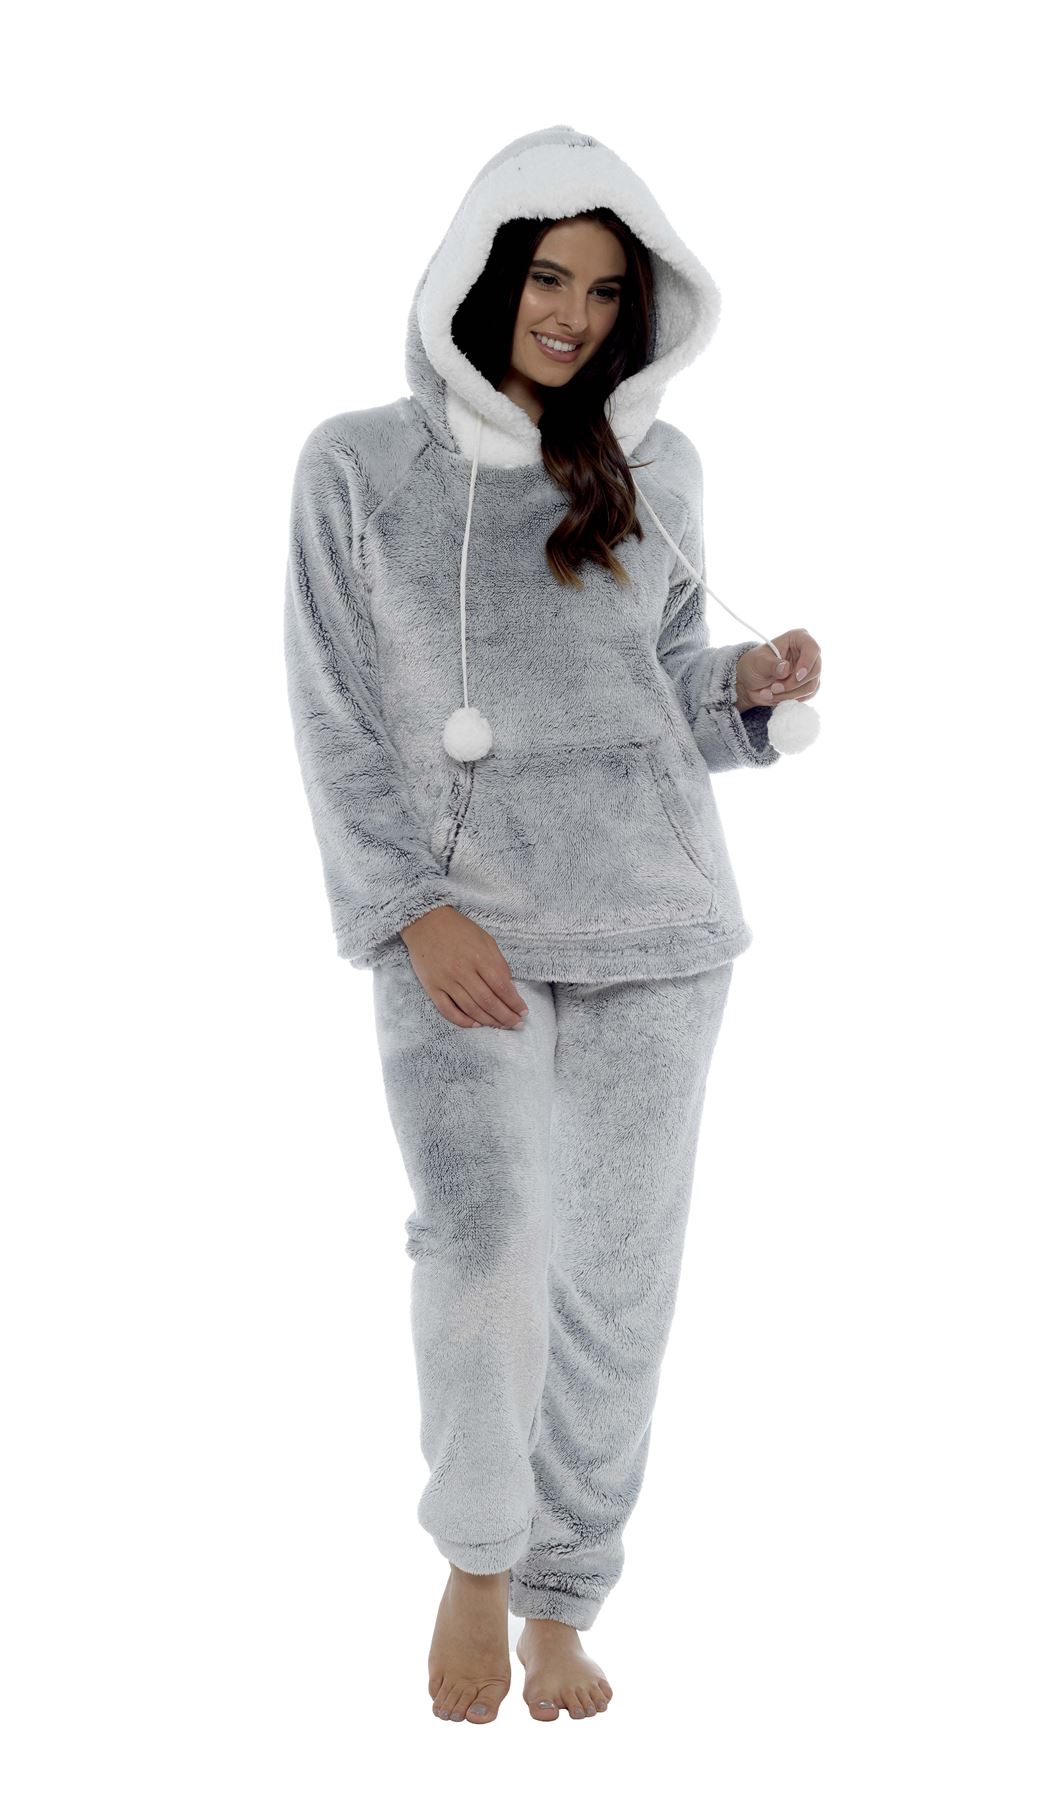 look out for newest style of vast selection Details about Women's Shimmer Fleece Pyjamas, Fluffy Soft Hooded Twosie  Pyjama Set, LN769